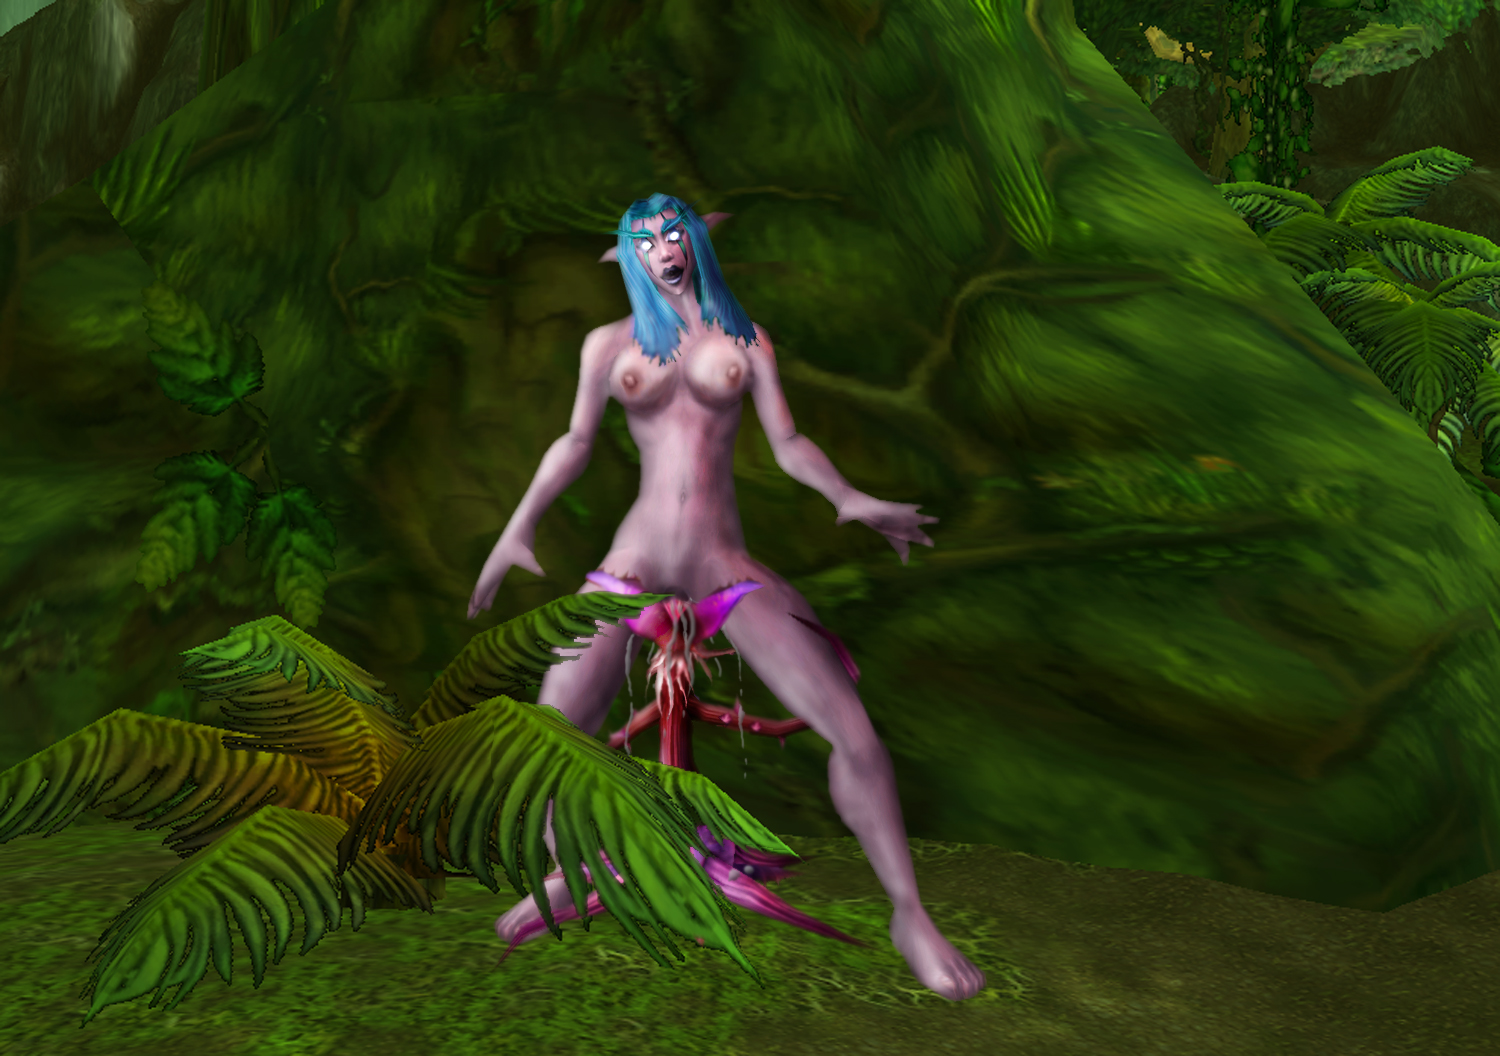 Druid and elf whorecraft nude image